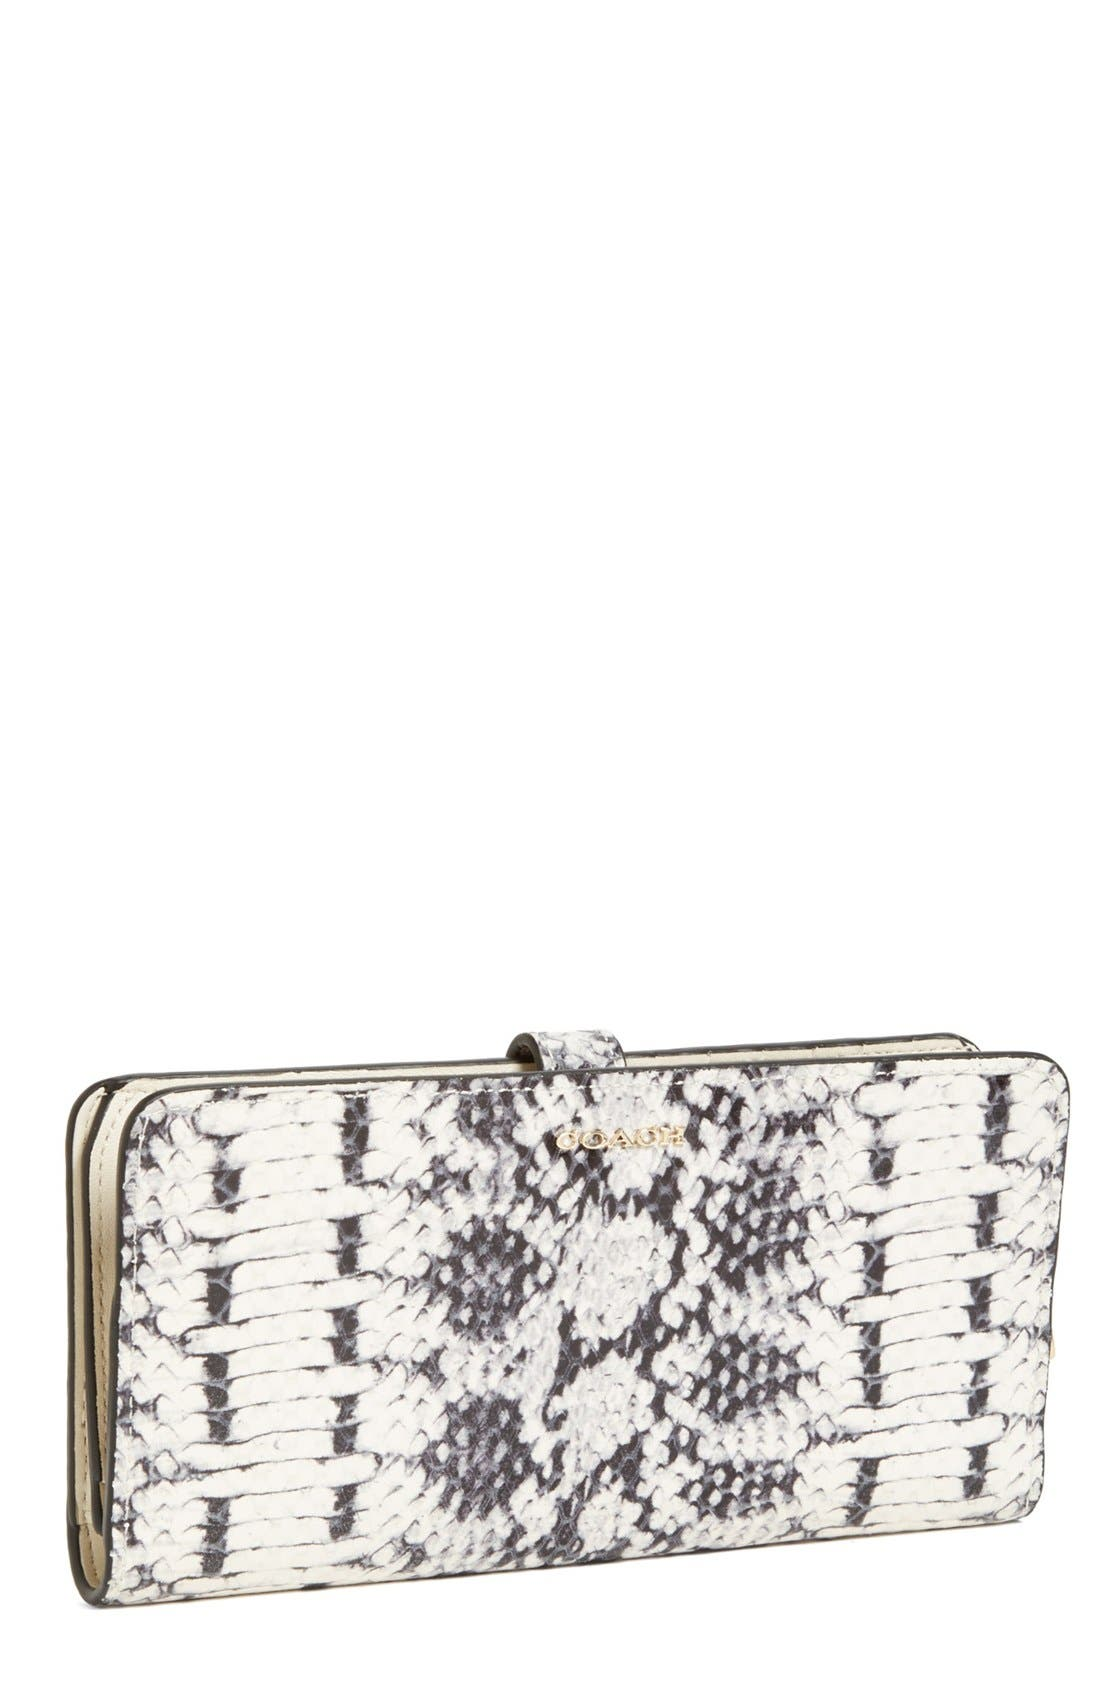 Main Image - COACH 'Madison' Python Embossed Leather Wallet